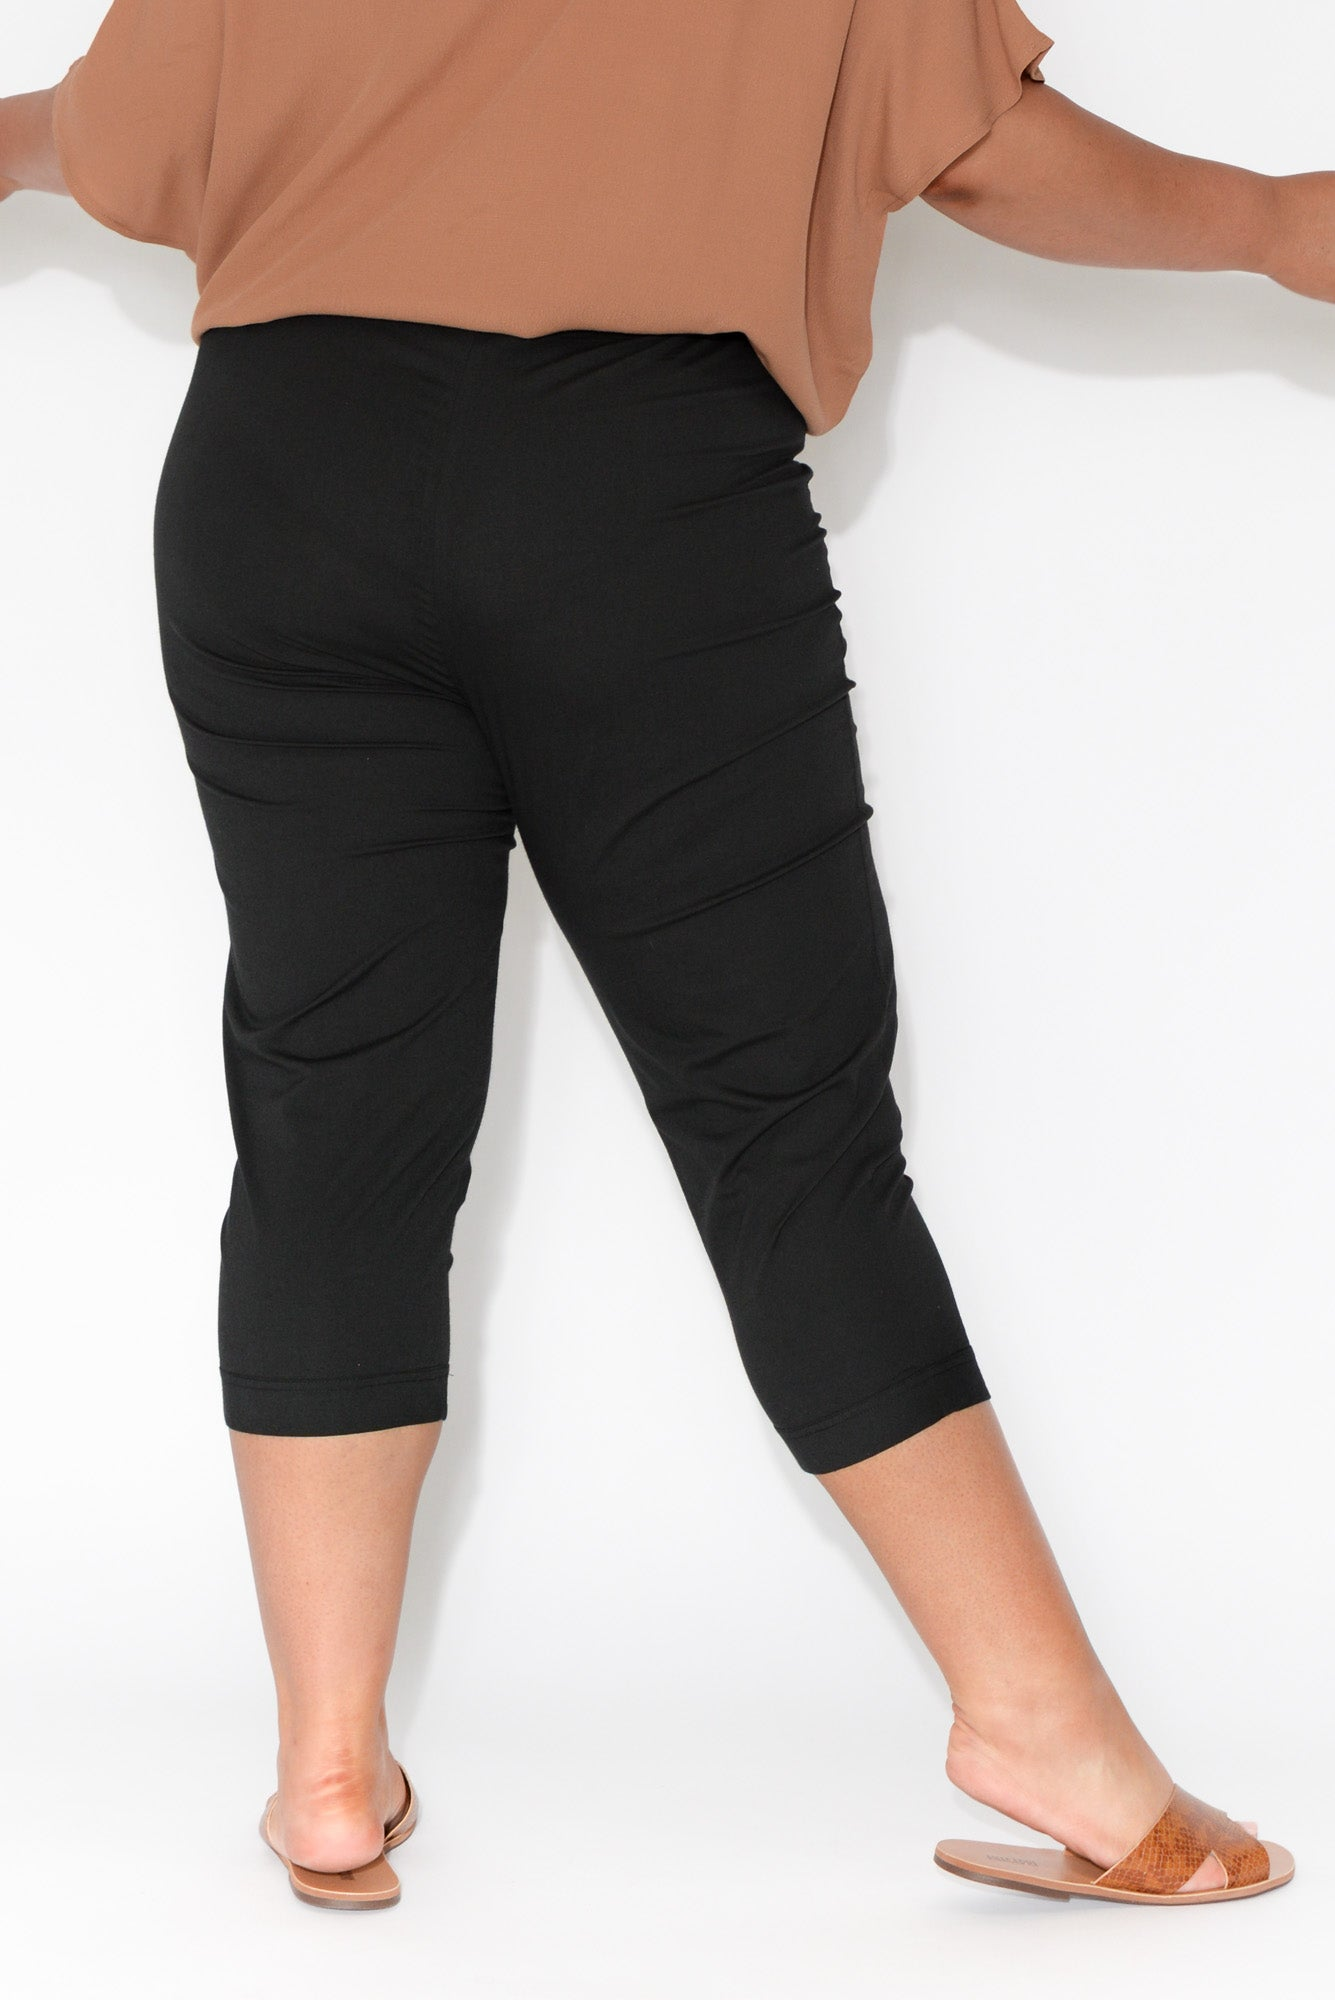 Darcy Black Cotton Capri Pant